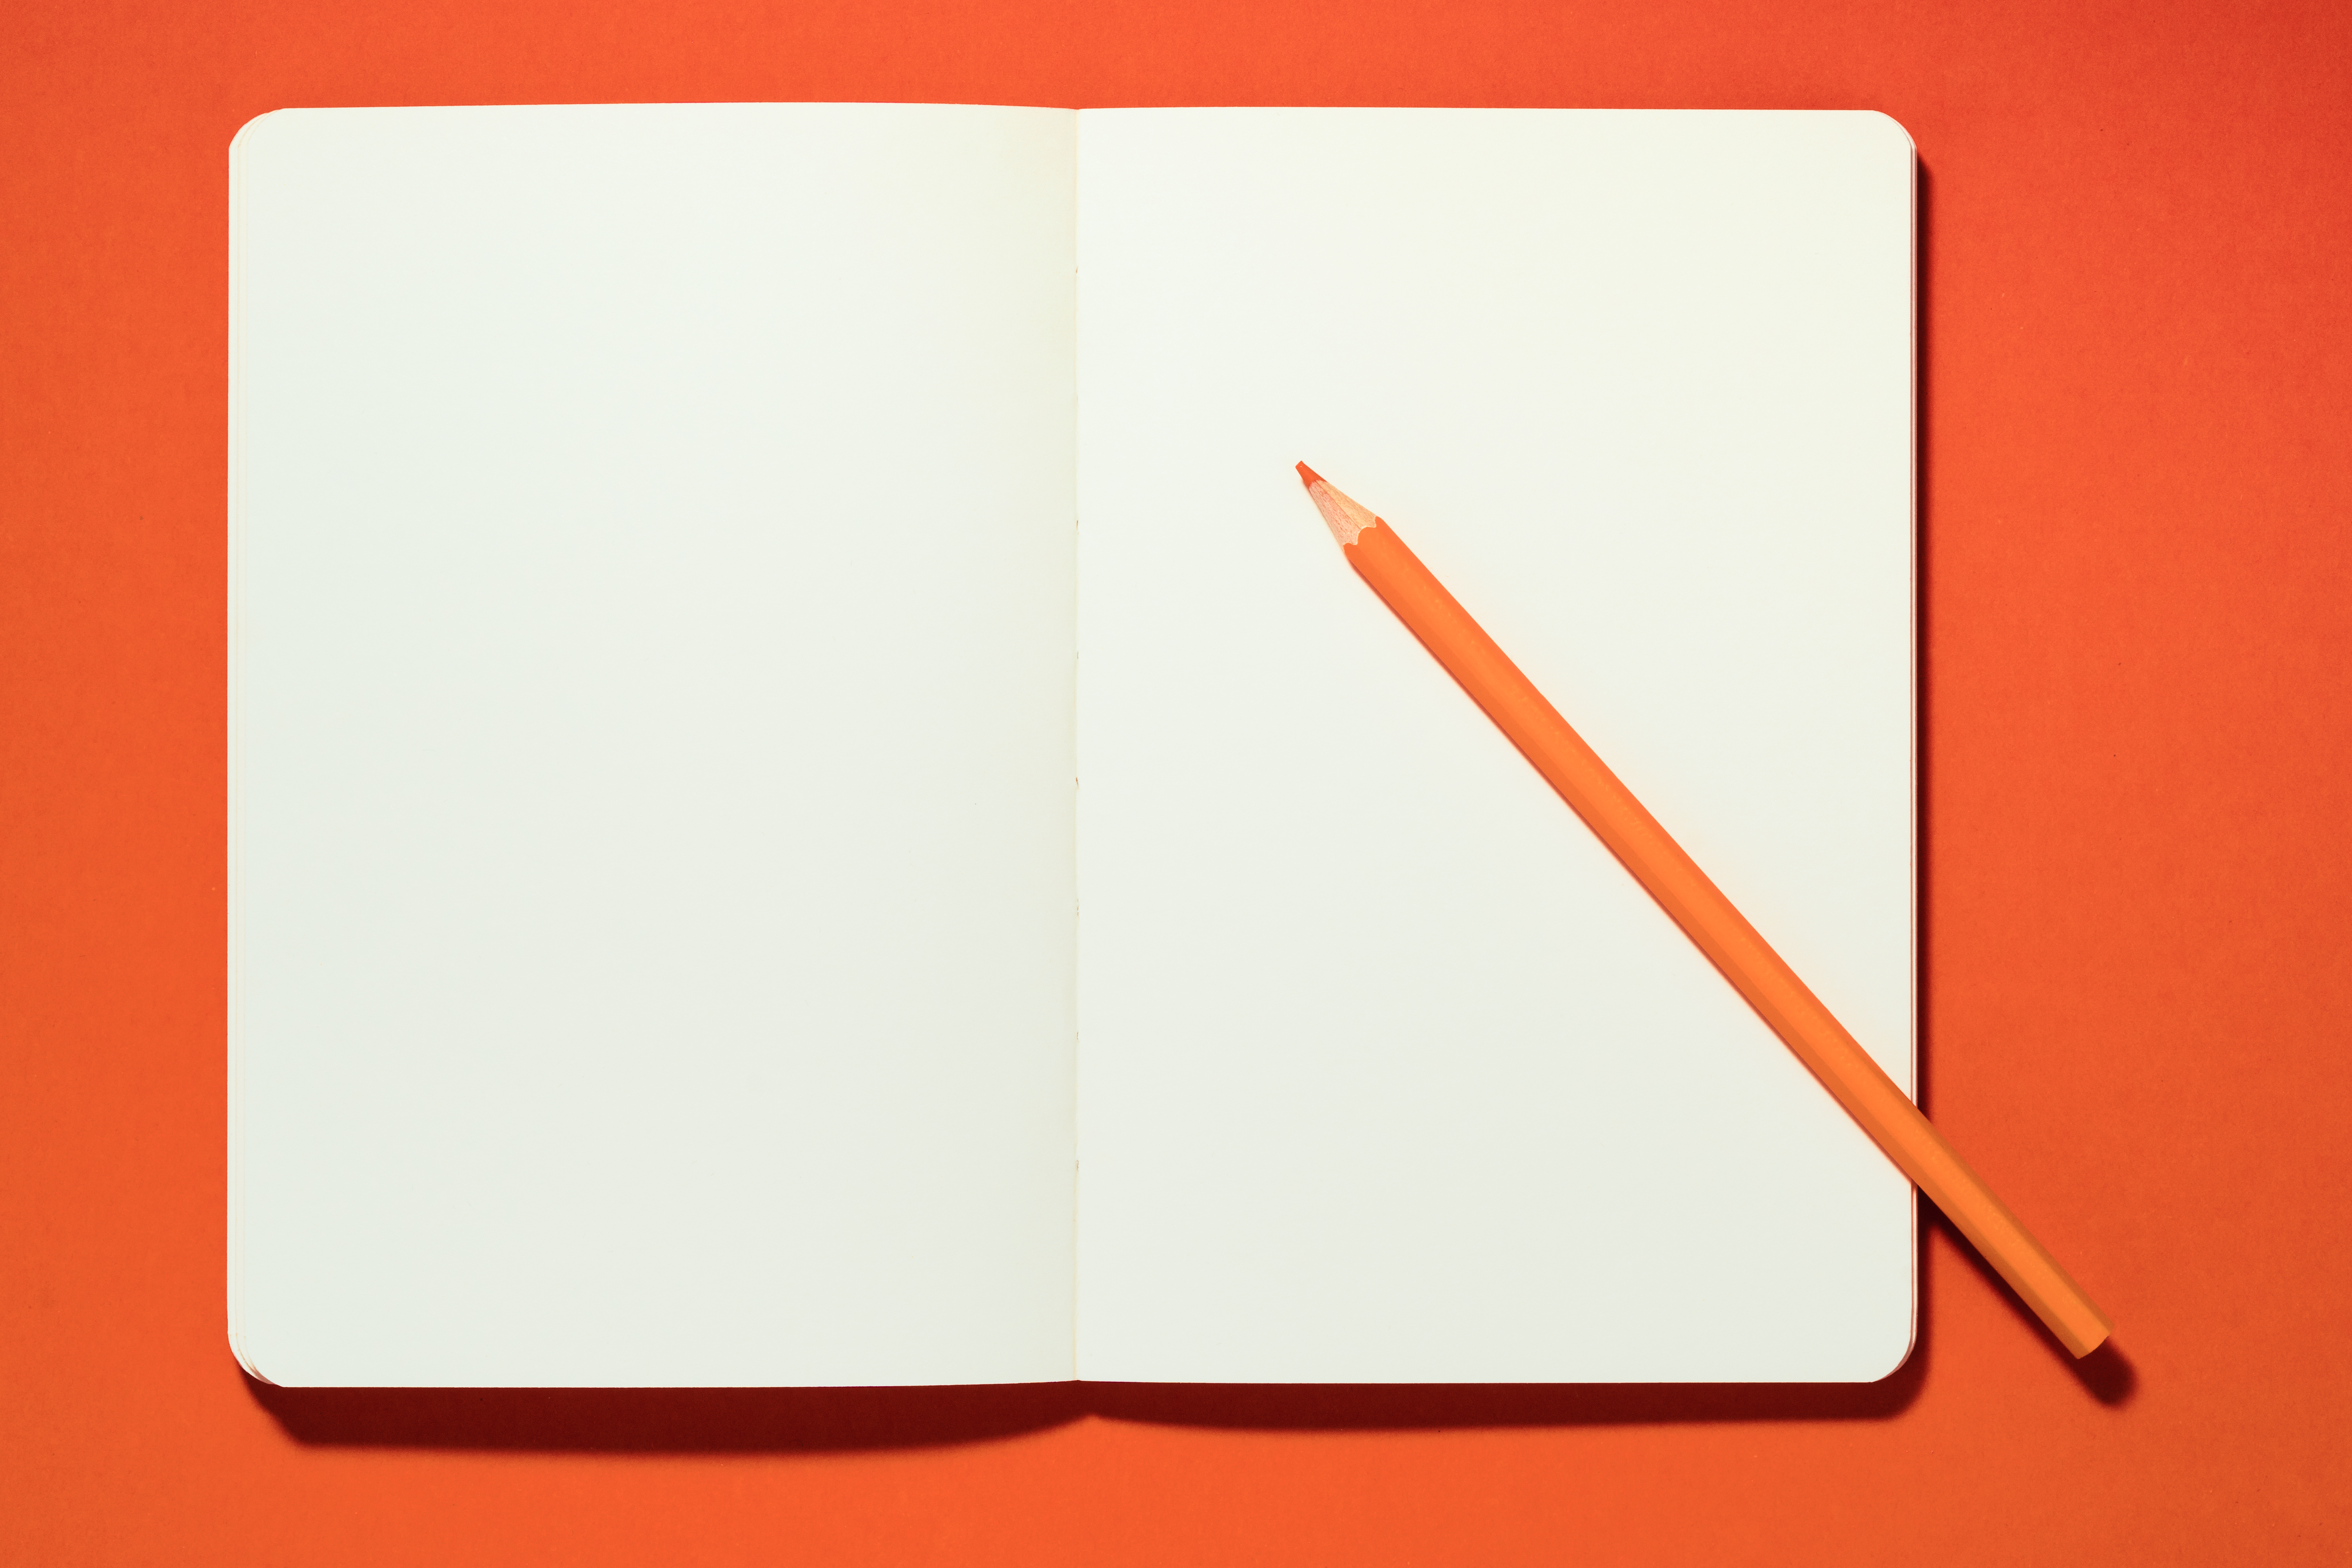 Orange Pencil on a Opened Blank Notebook against Orange Color Background Overhead View.